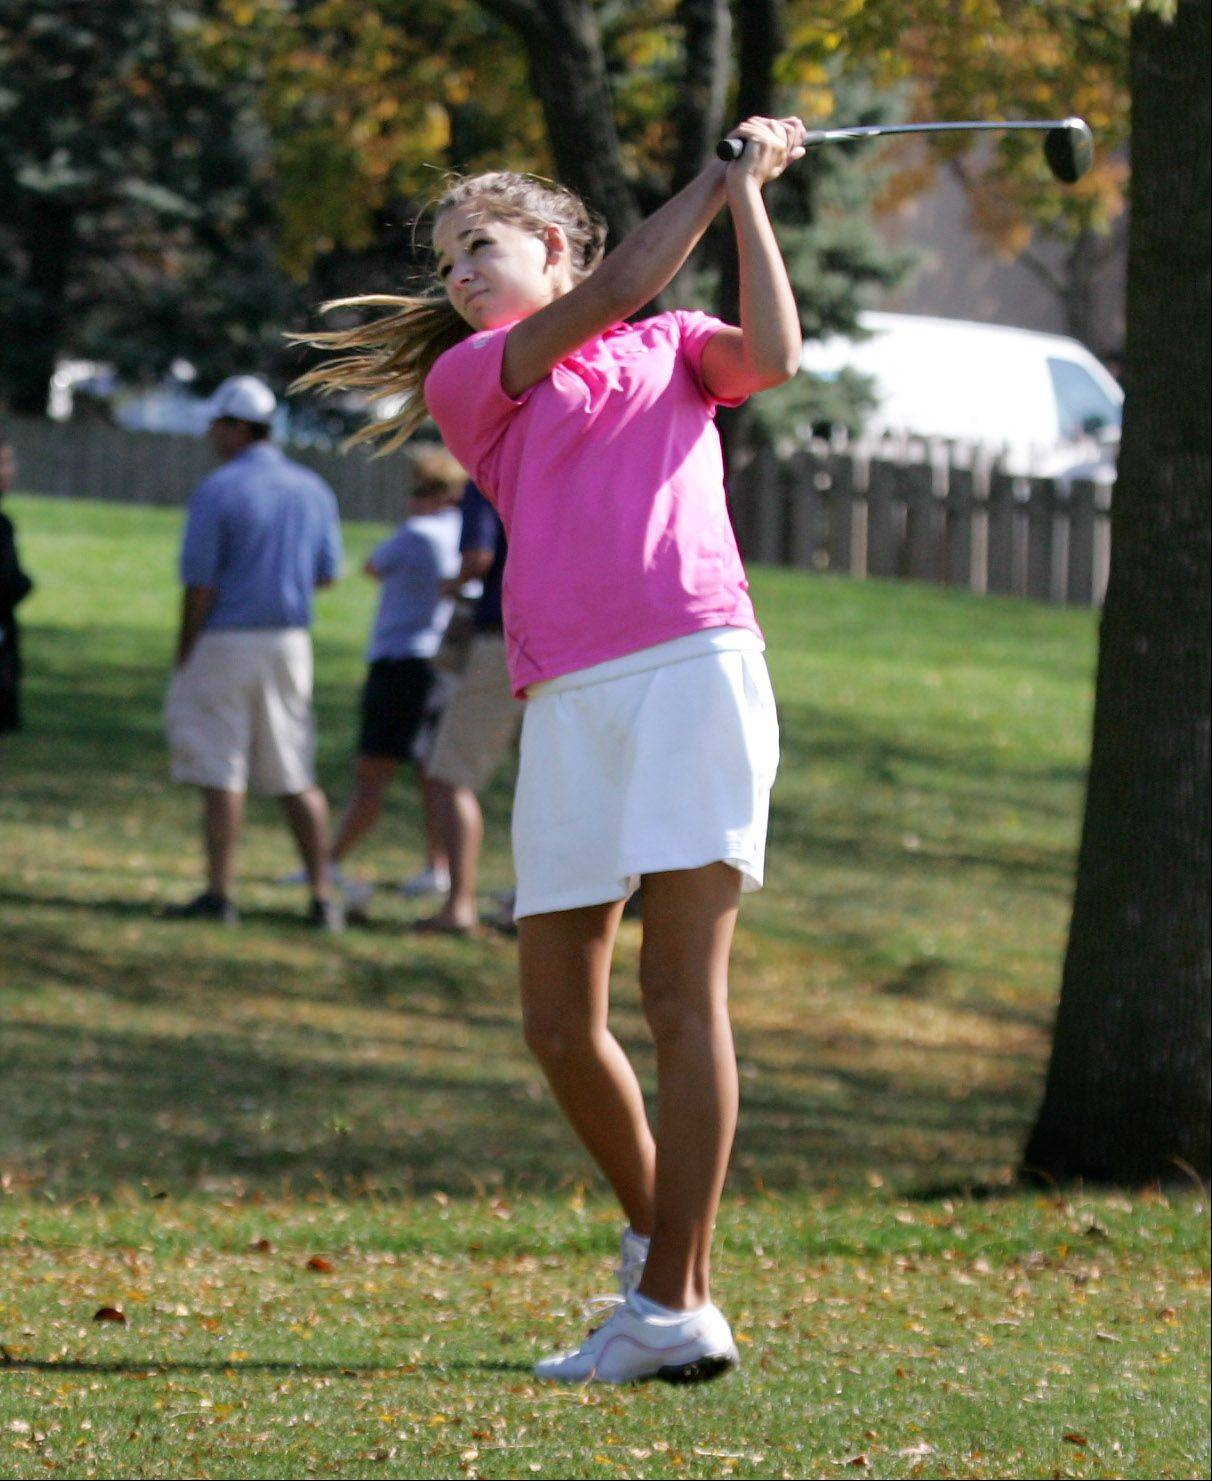 Carmel golfer Nikki Pavlis makes a drive during the Class 2A girls golf sectional Monday at Buffalo Grove Golf Club.